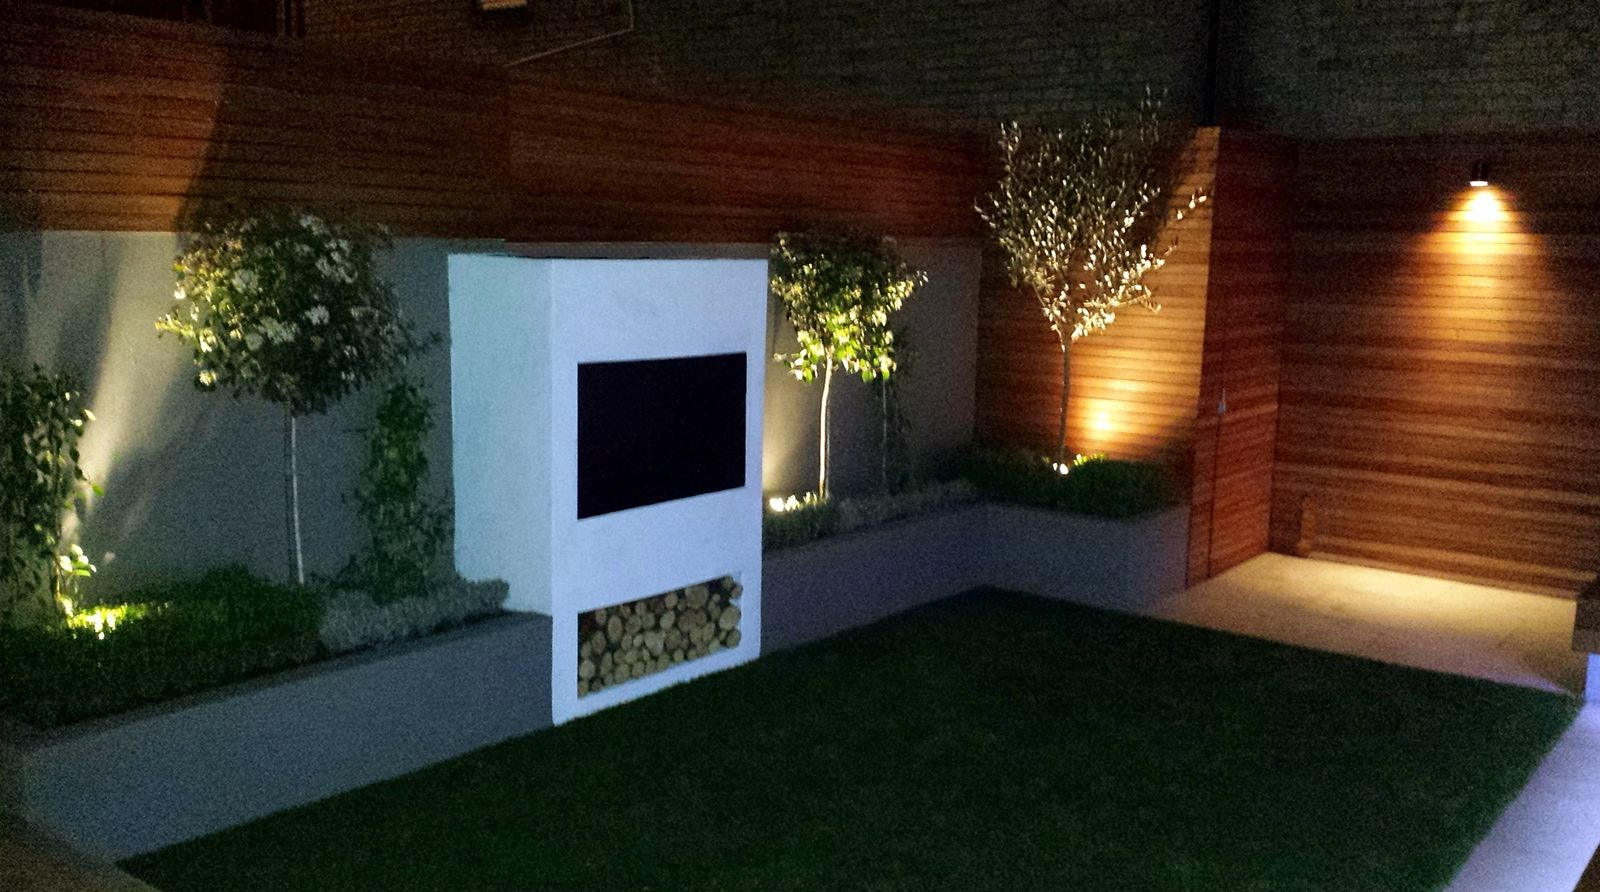 Modern garden design ideas great lighting fireplace for Modern exterior wall design